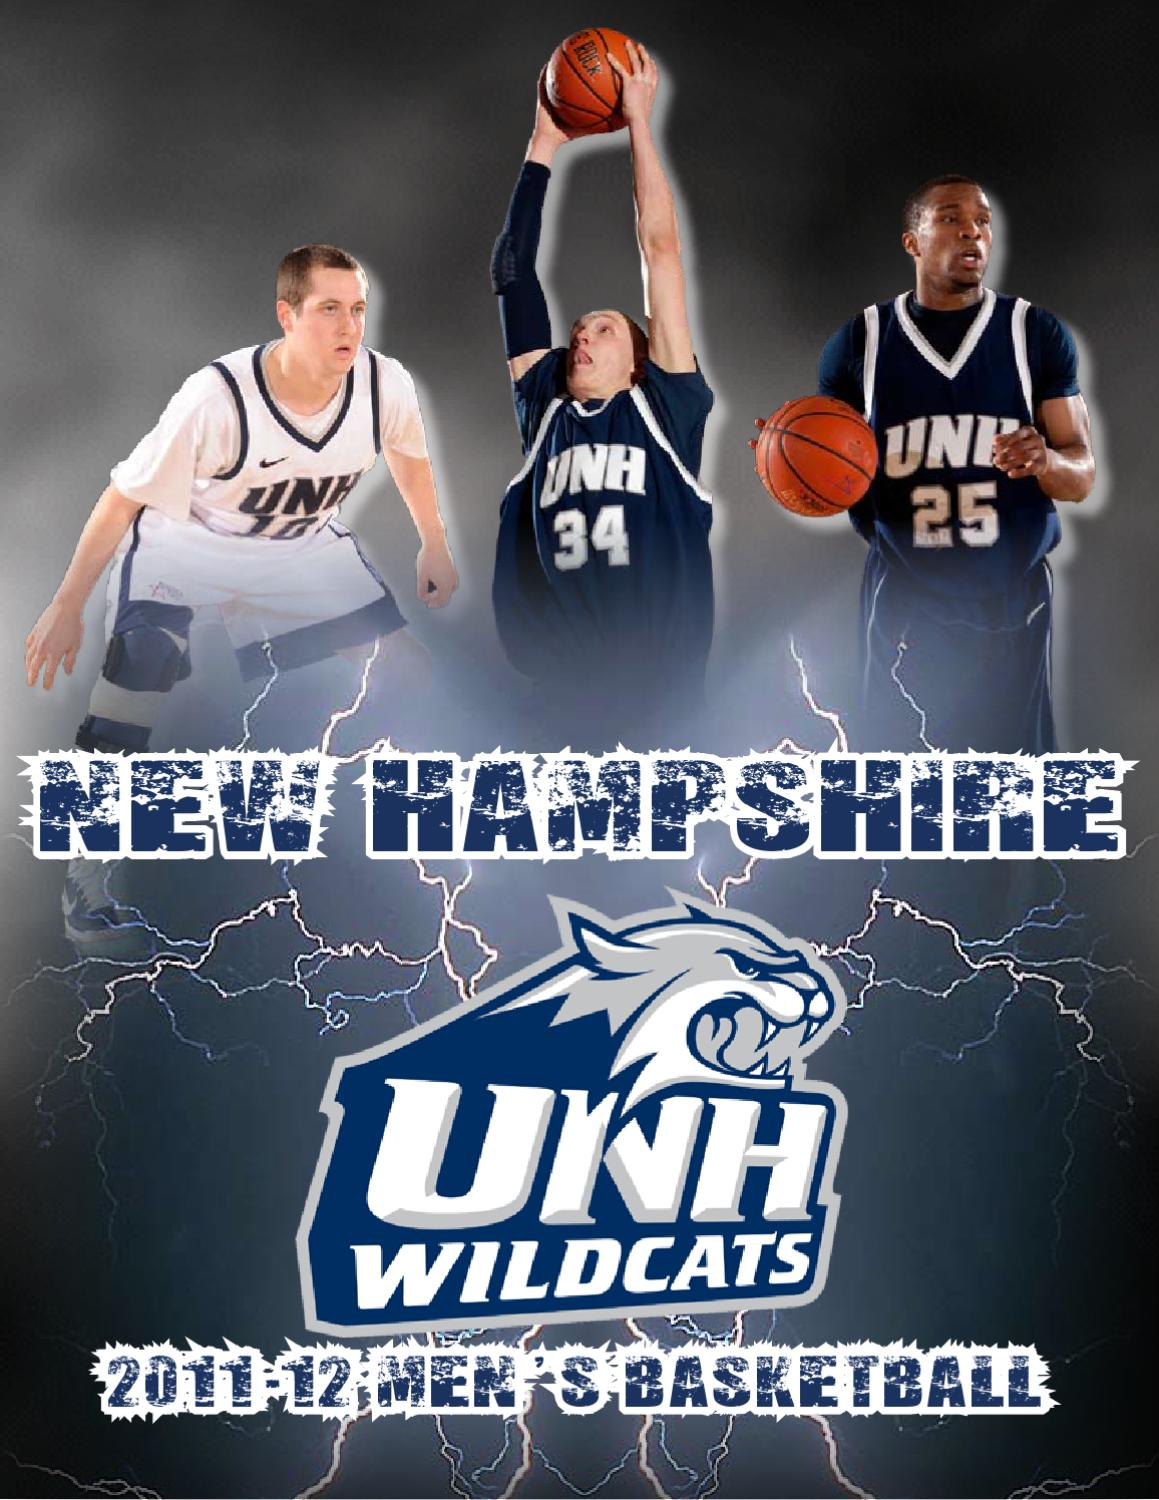 2011 12 Unh Men S Basketball Media Guide By University Of New Hampshire Athletics Issuu Specializing in women's basketball, boris client list now includes some of the top athletes in the boris has developed an incredible reputation in the professional basketball world through his. 2011 12 unh men s basketball media